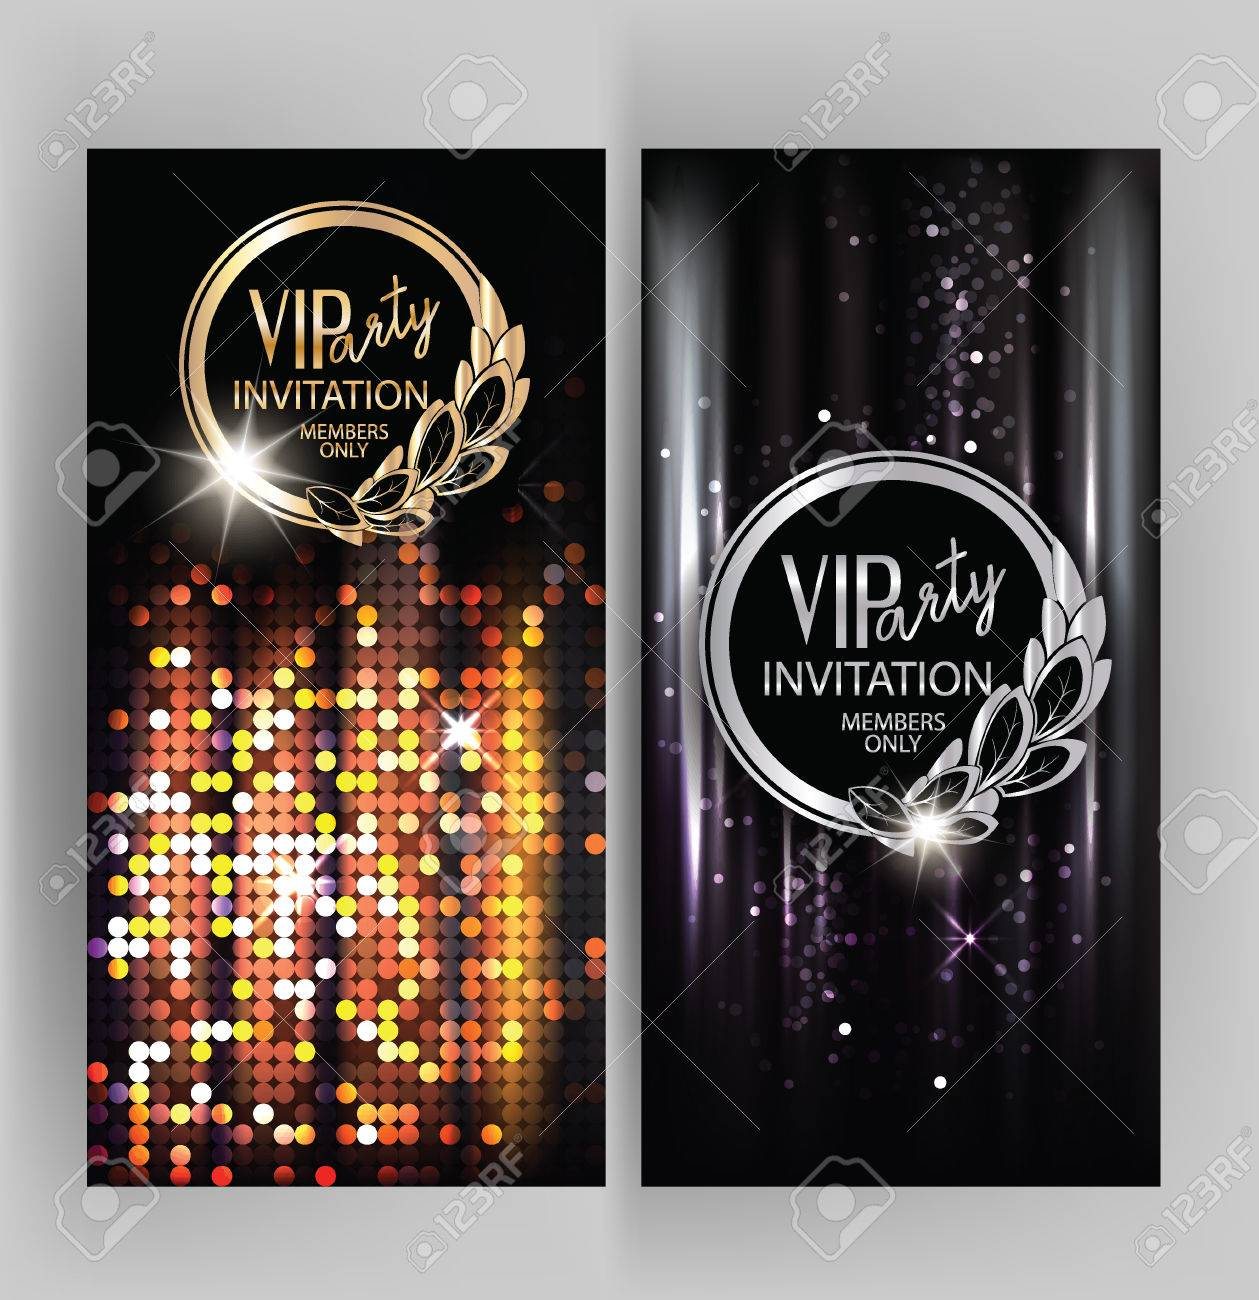 VIP Party Invitation Card With Abstract Sparkling Background Stock ...